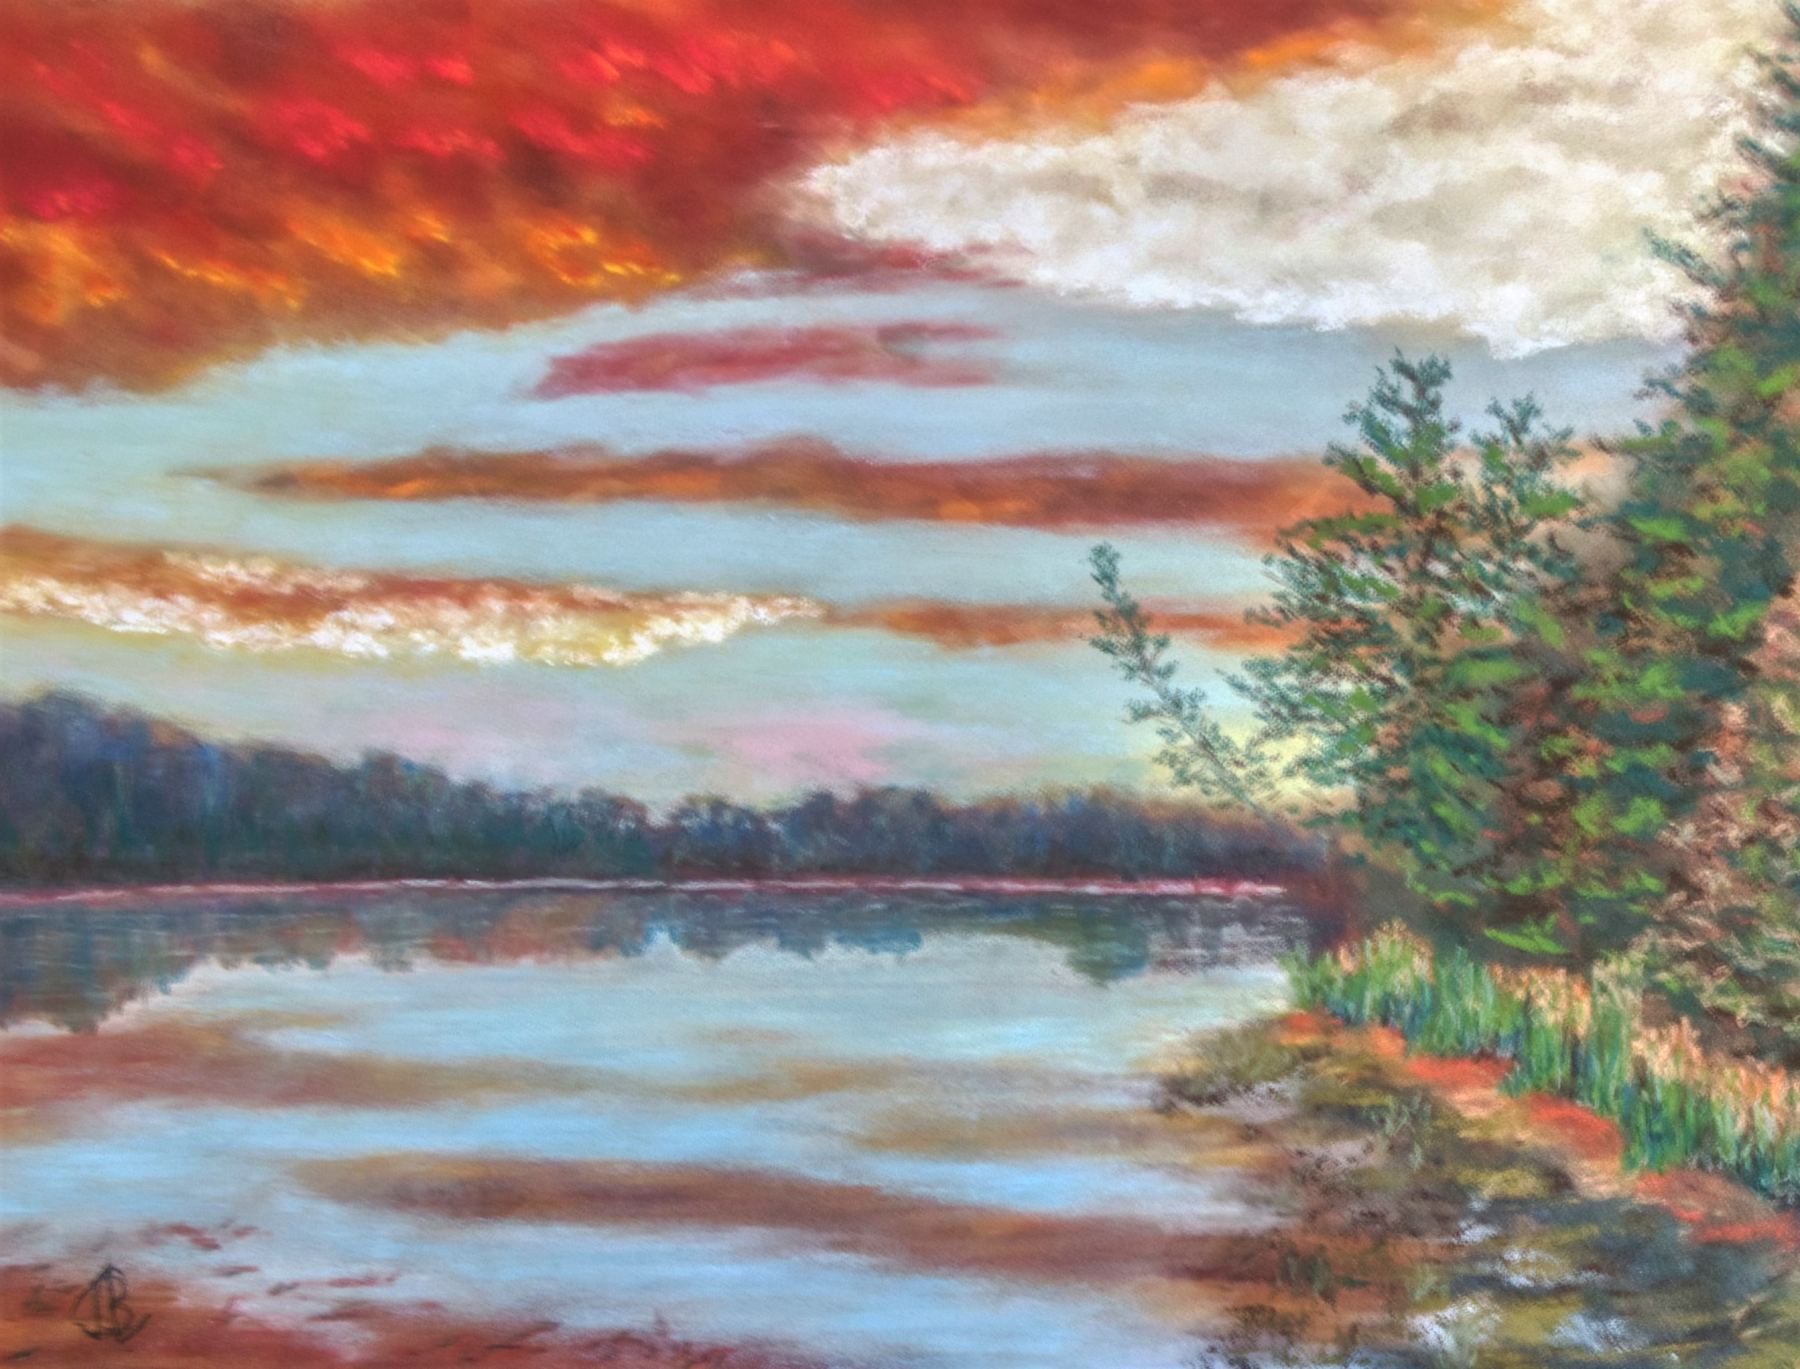 Lake, Mississippi headwaters, Lake Itasca, reflection, sunset, fiery sky, pastel, painting, realistic, JBL-Art, Barrie Leigh